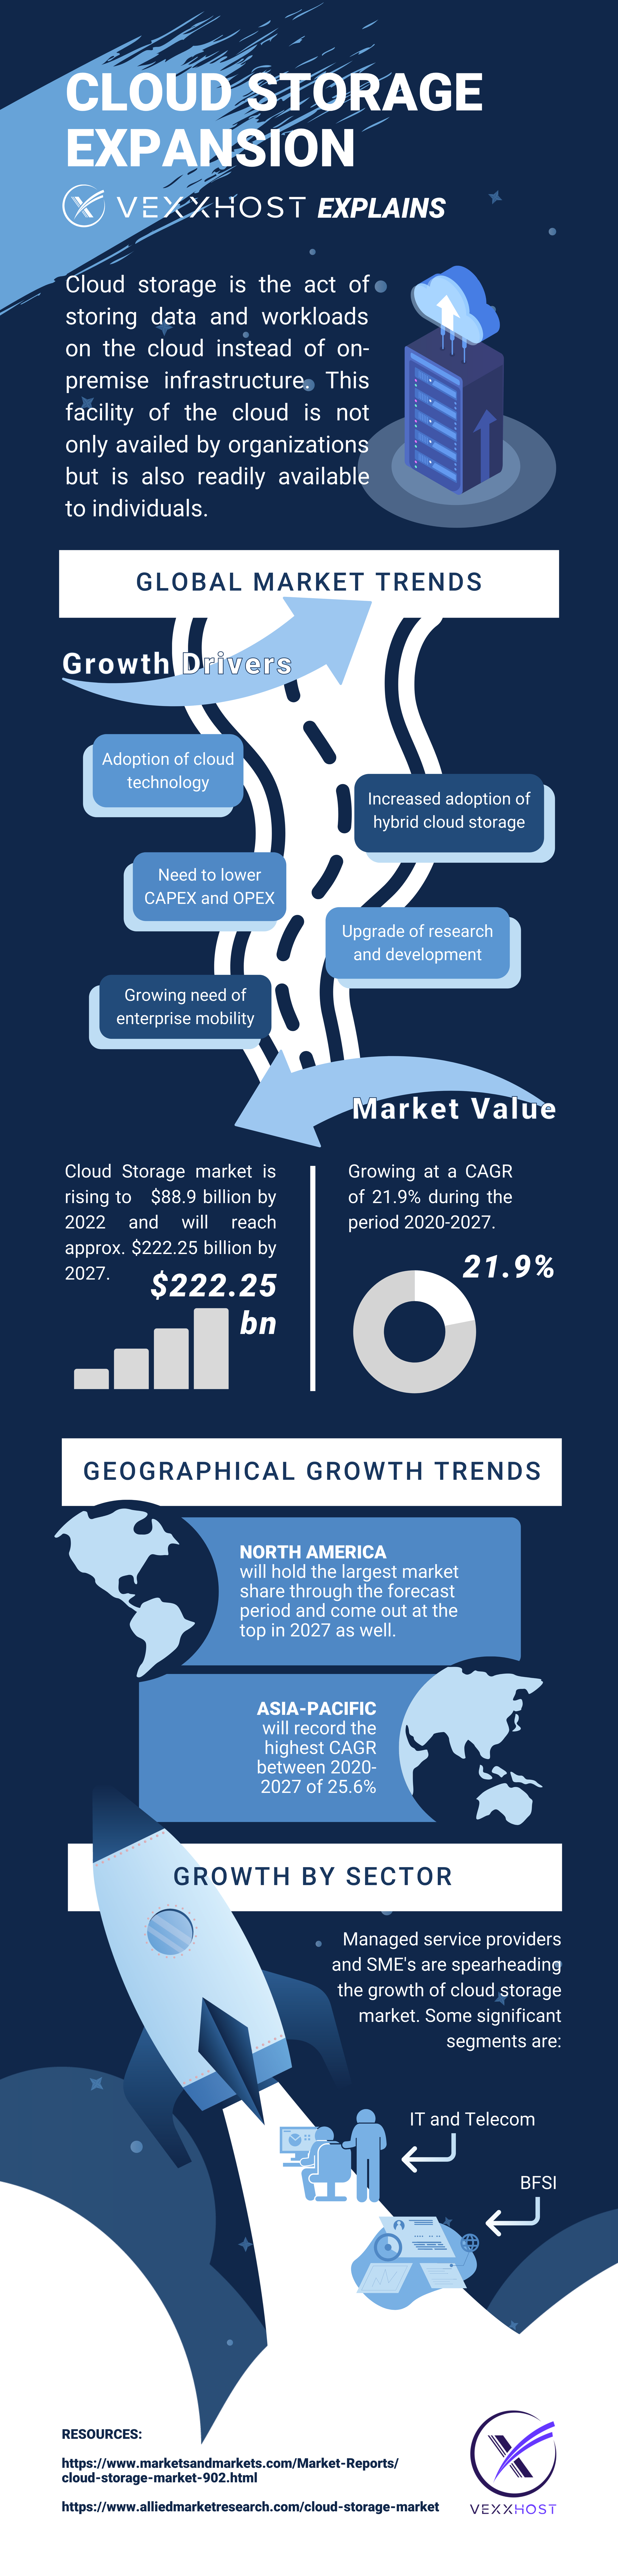 cloud storage growth and expansion infographic